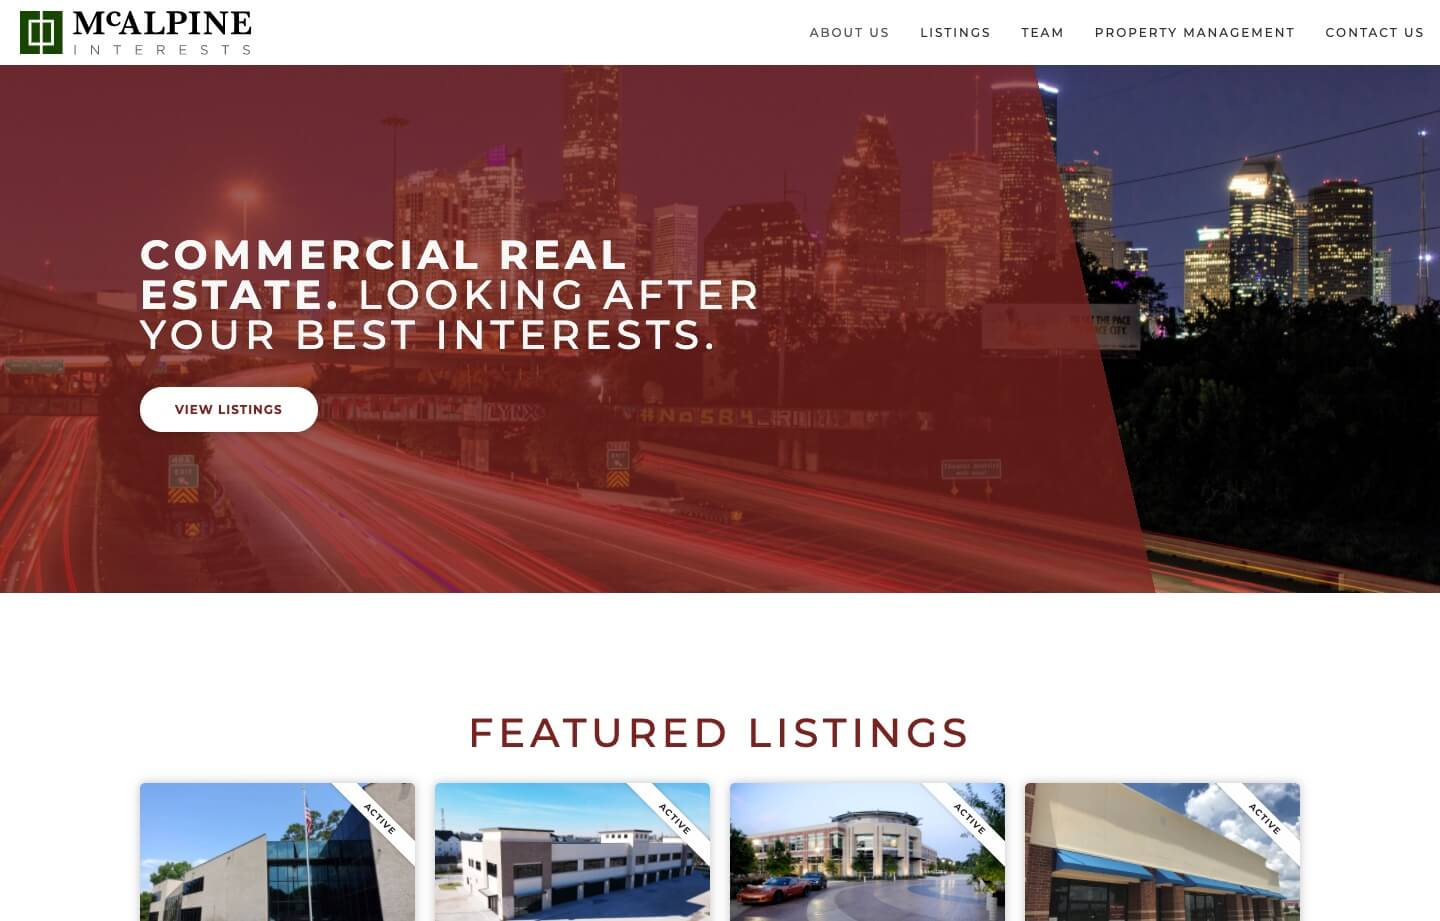 Real estate and brokerage and property management website for McAlpine Interests